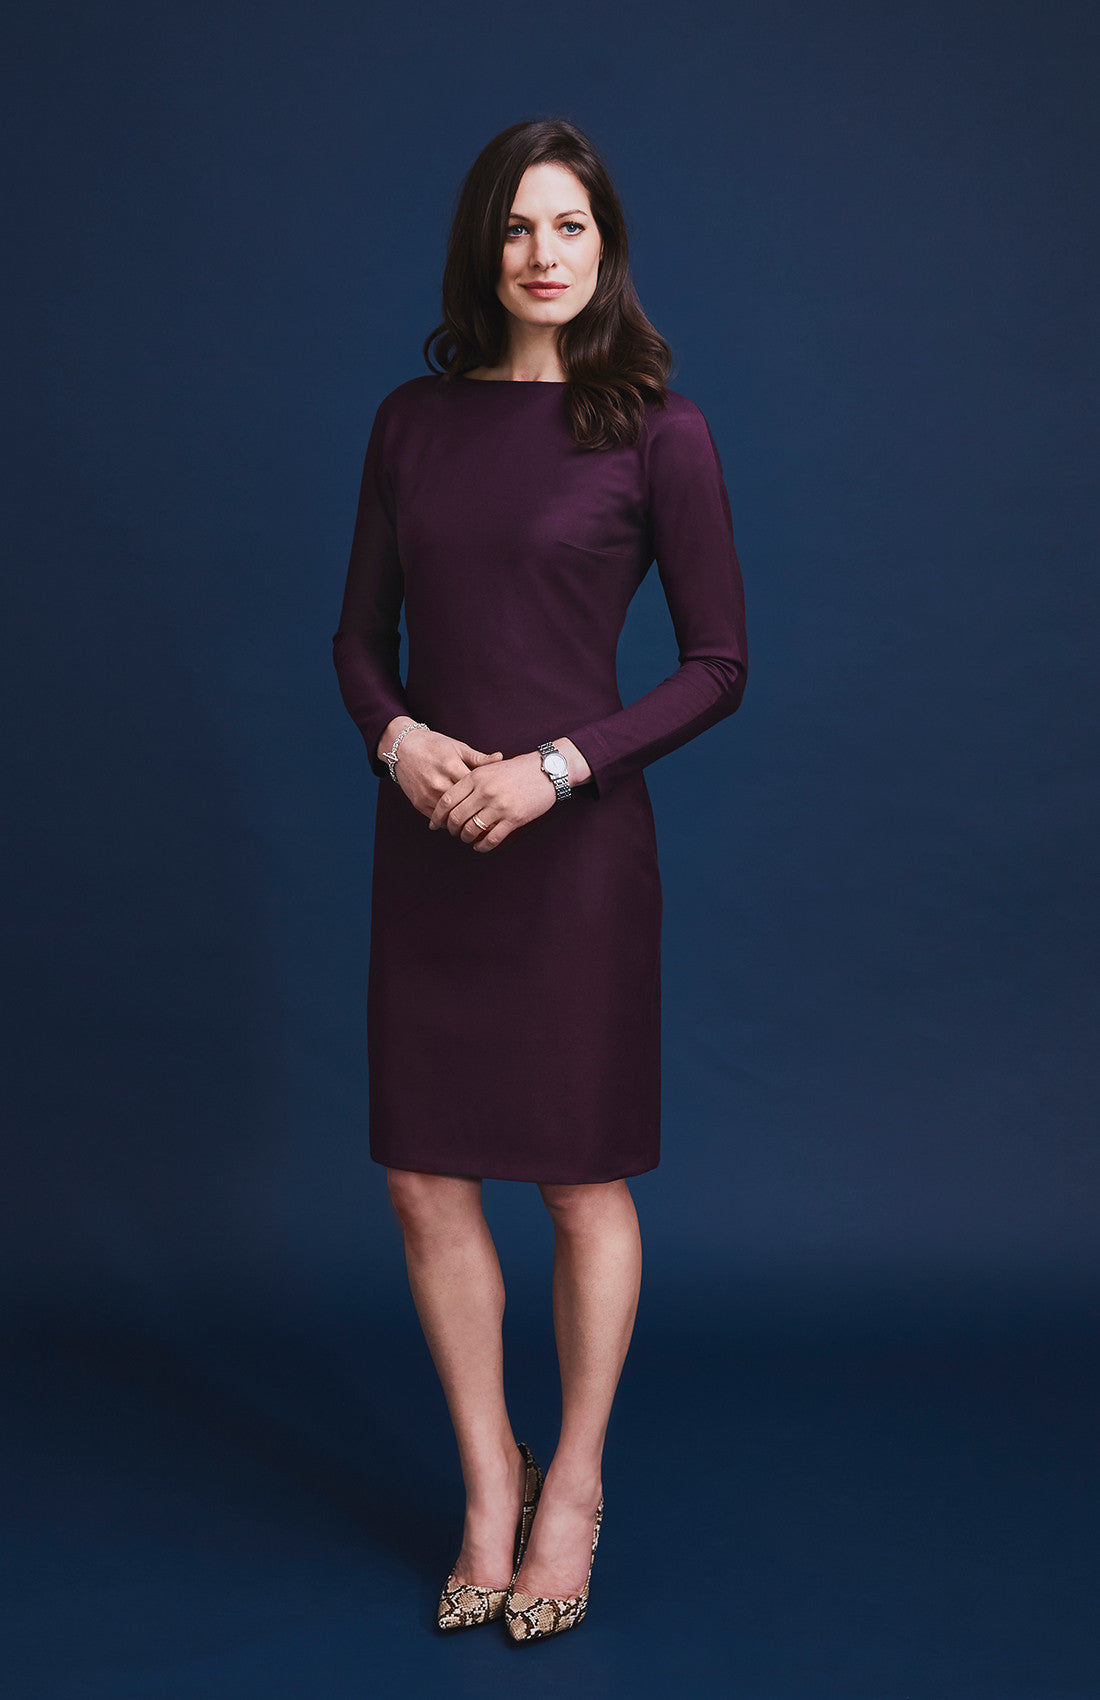 Burgundy flattering slim-fitting long sleeve knee length office dress for work